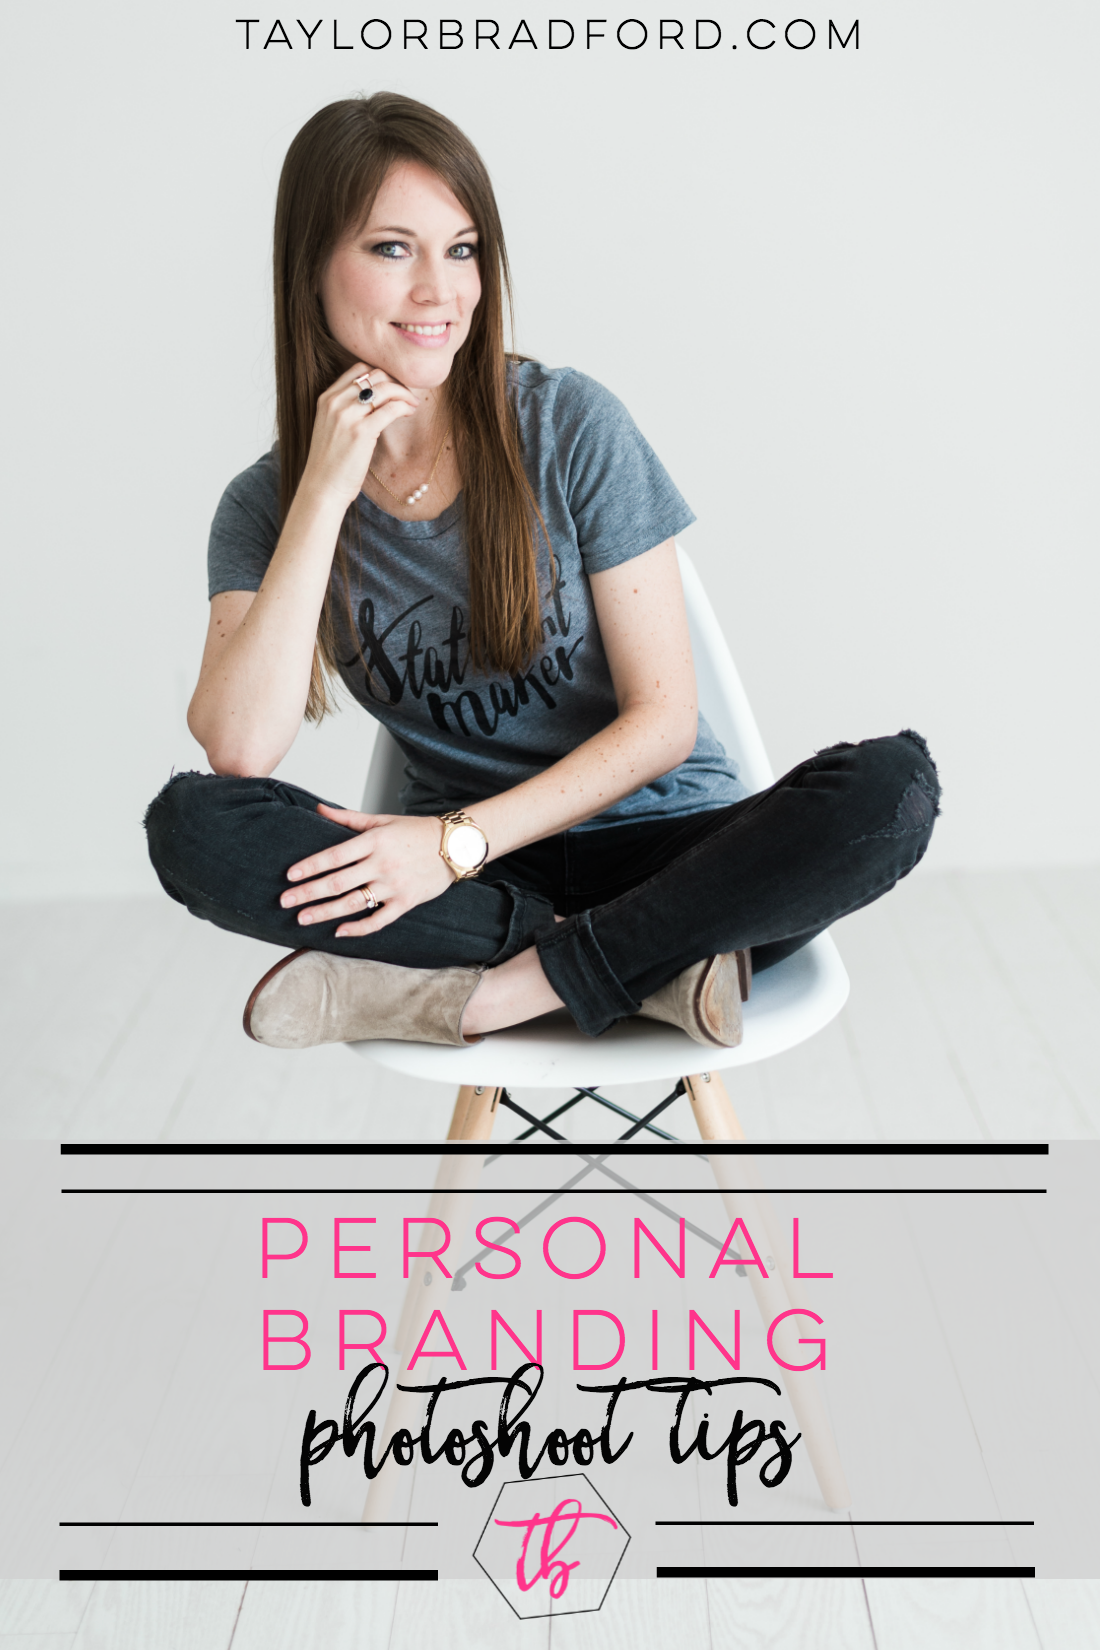 Check out these 5 Reasons on Why YOU should invest in a personal branding photoshoot for your blog/online business!